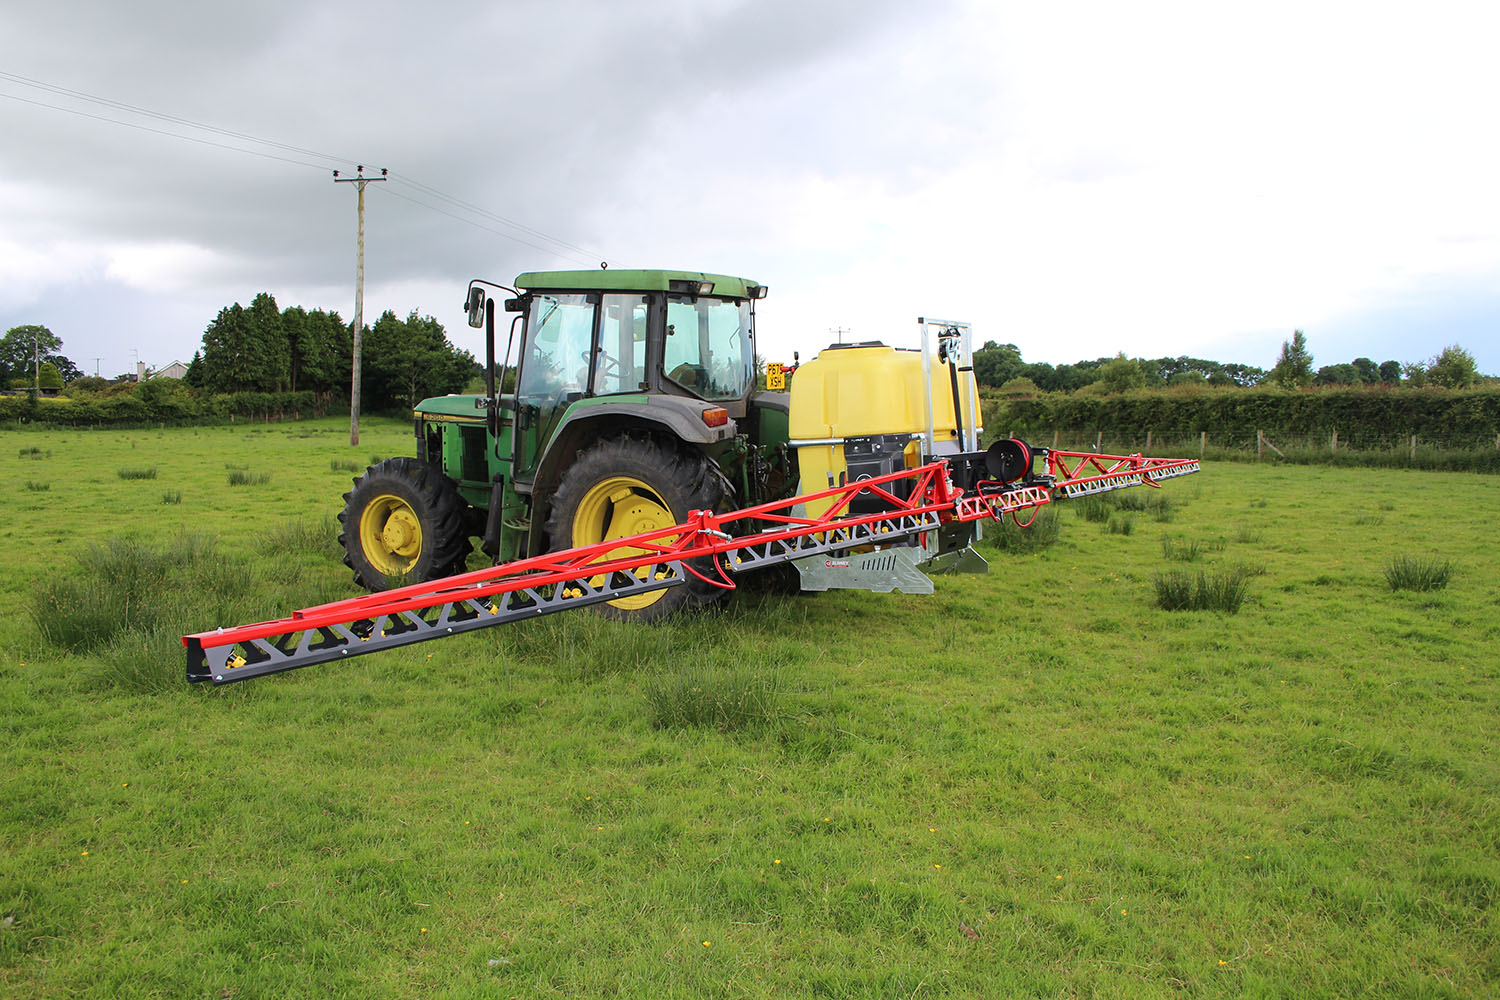 Boom Sprayers For Tractors : Blaney agri solutionstractor sprayers made in uk ireland